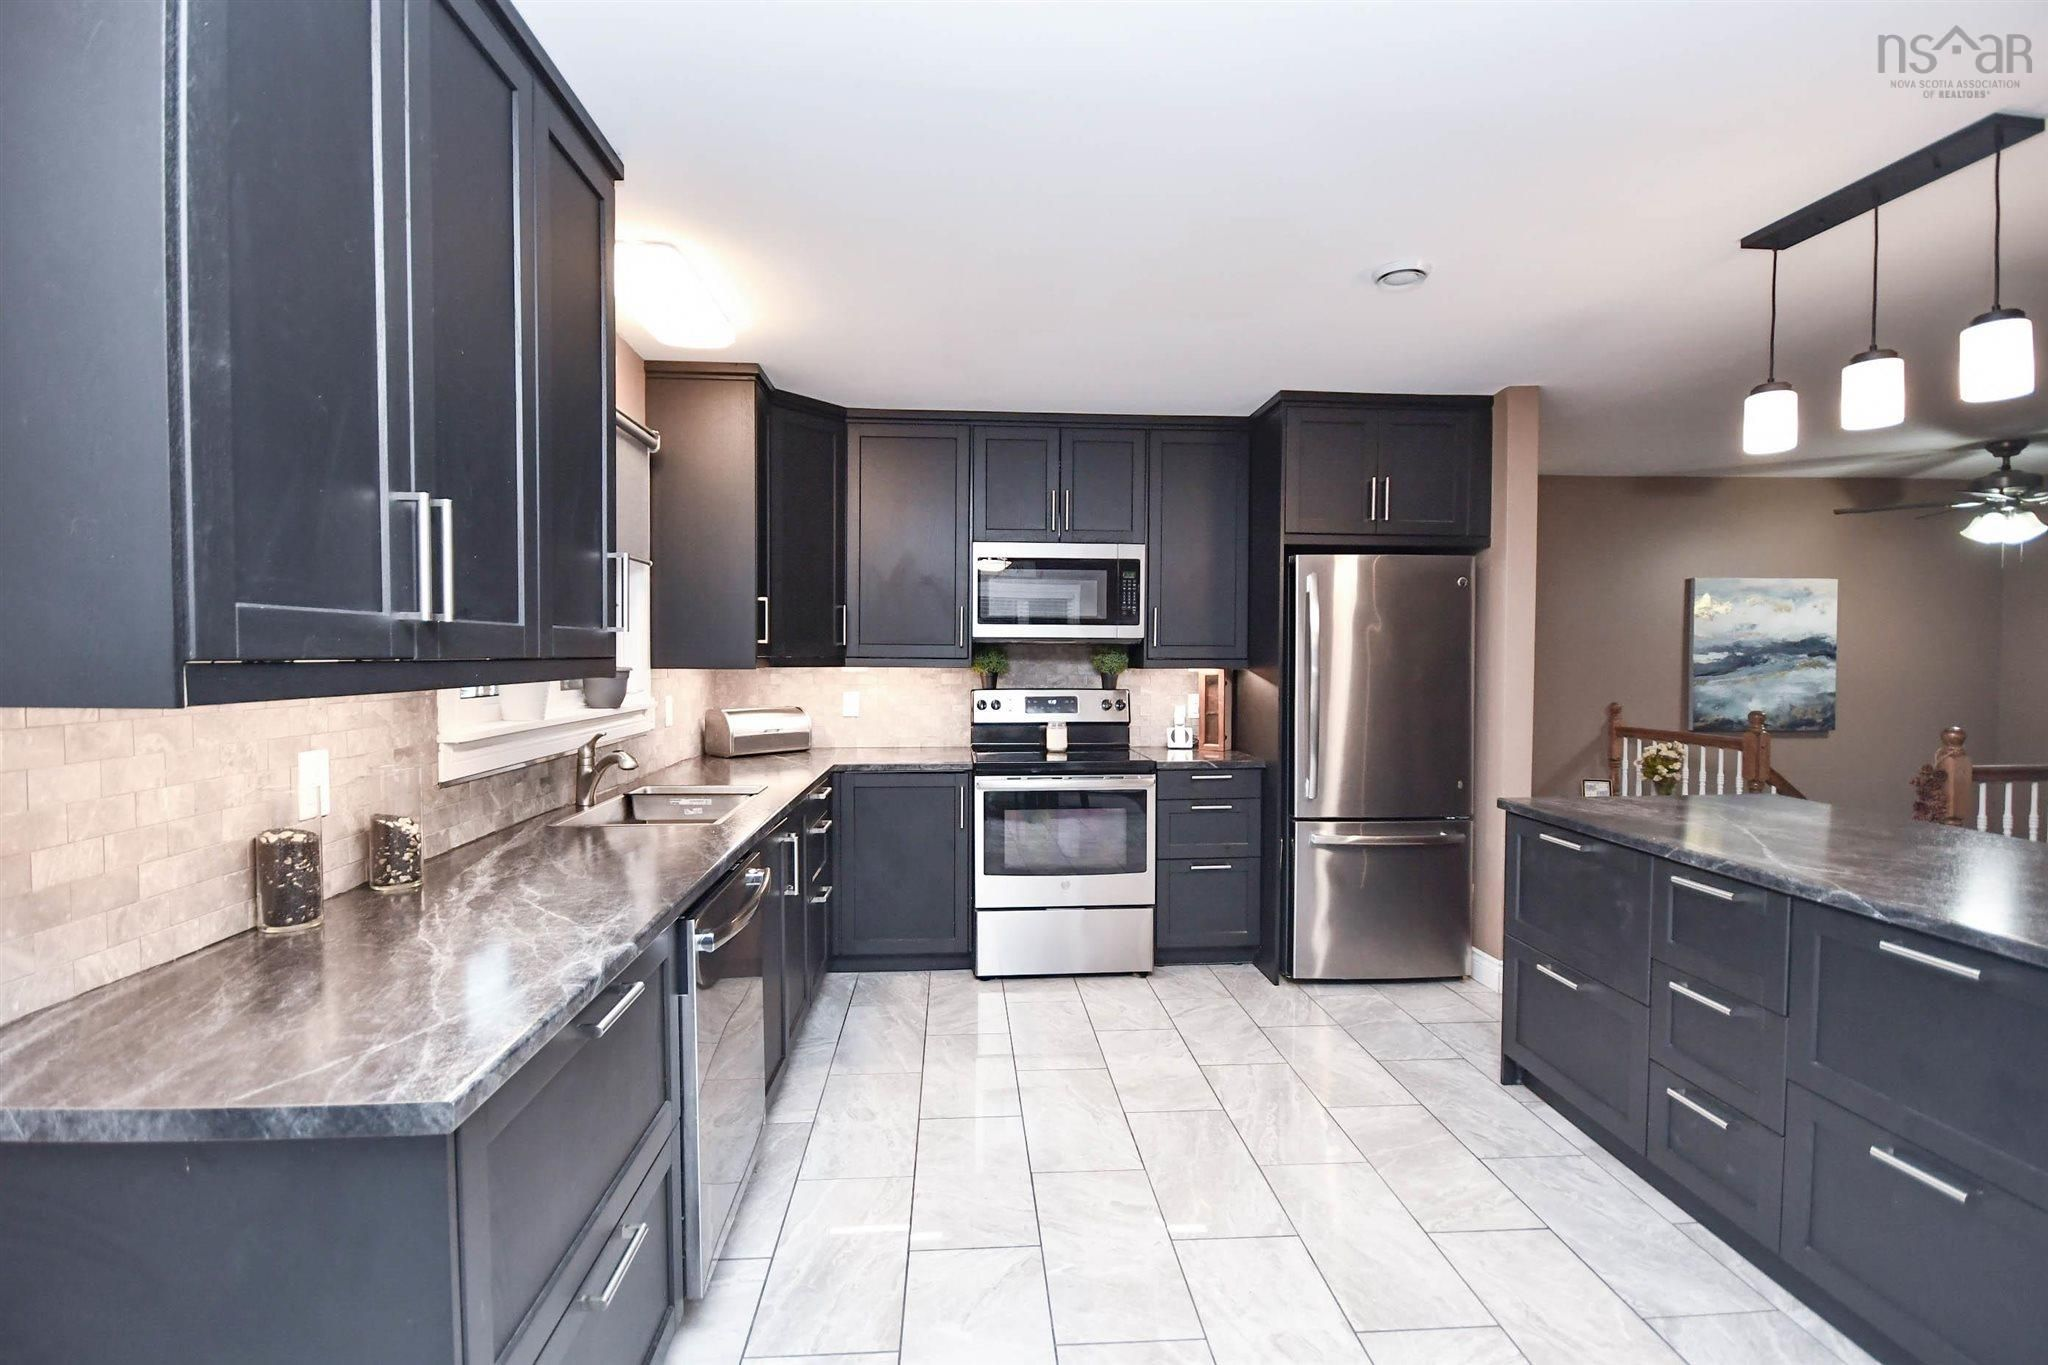 Photo 11: Photos: 1 Davison Drive in Fall River: 30-Waverley, Fall River, Oakfield Residential for sale (Halifax-Dartmouth)  : MLS®# 202123336